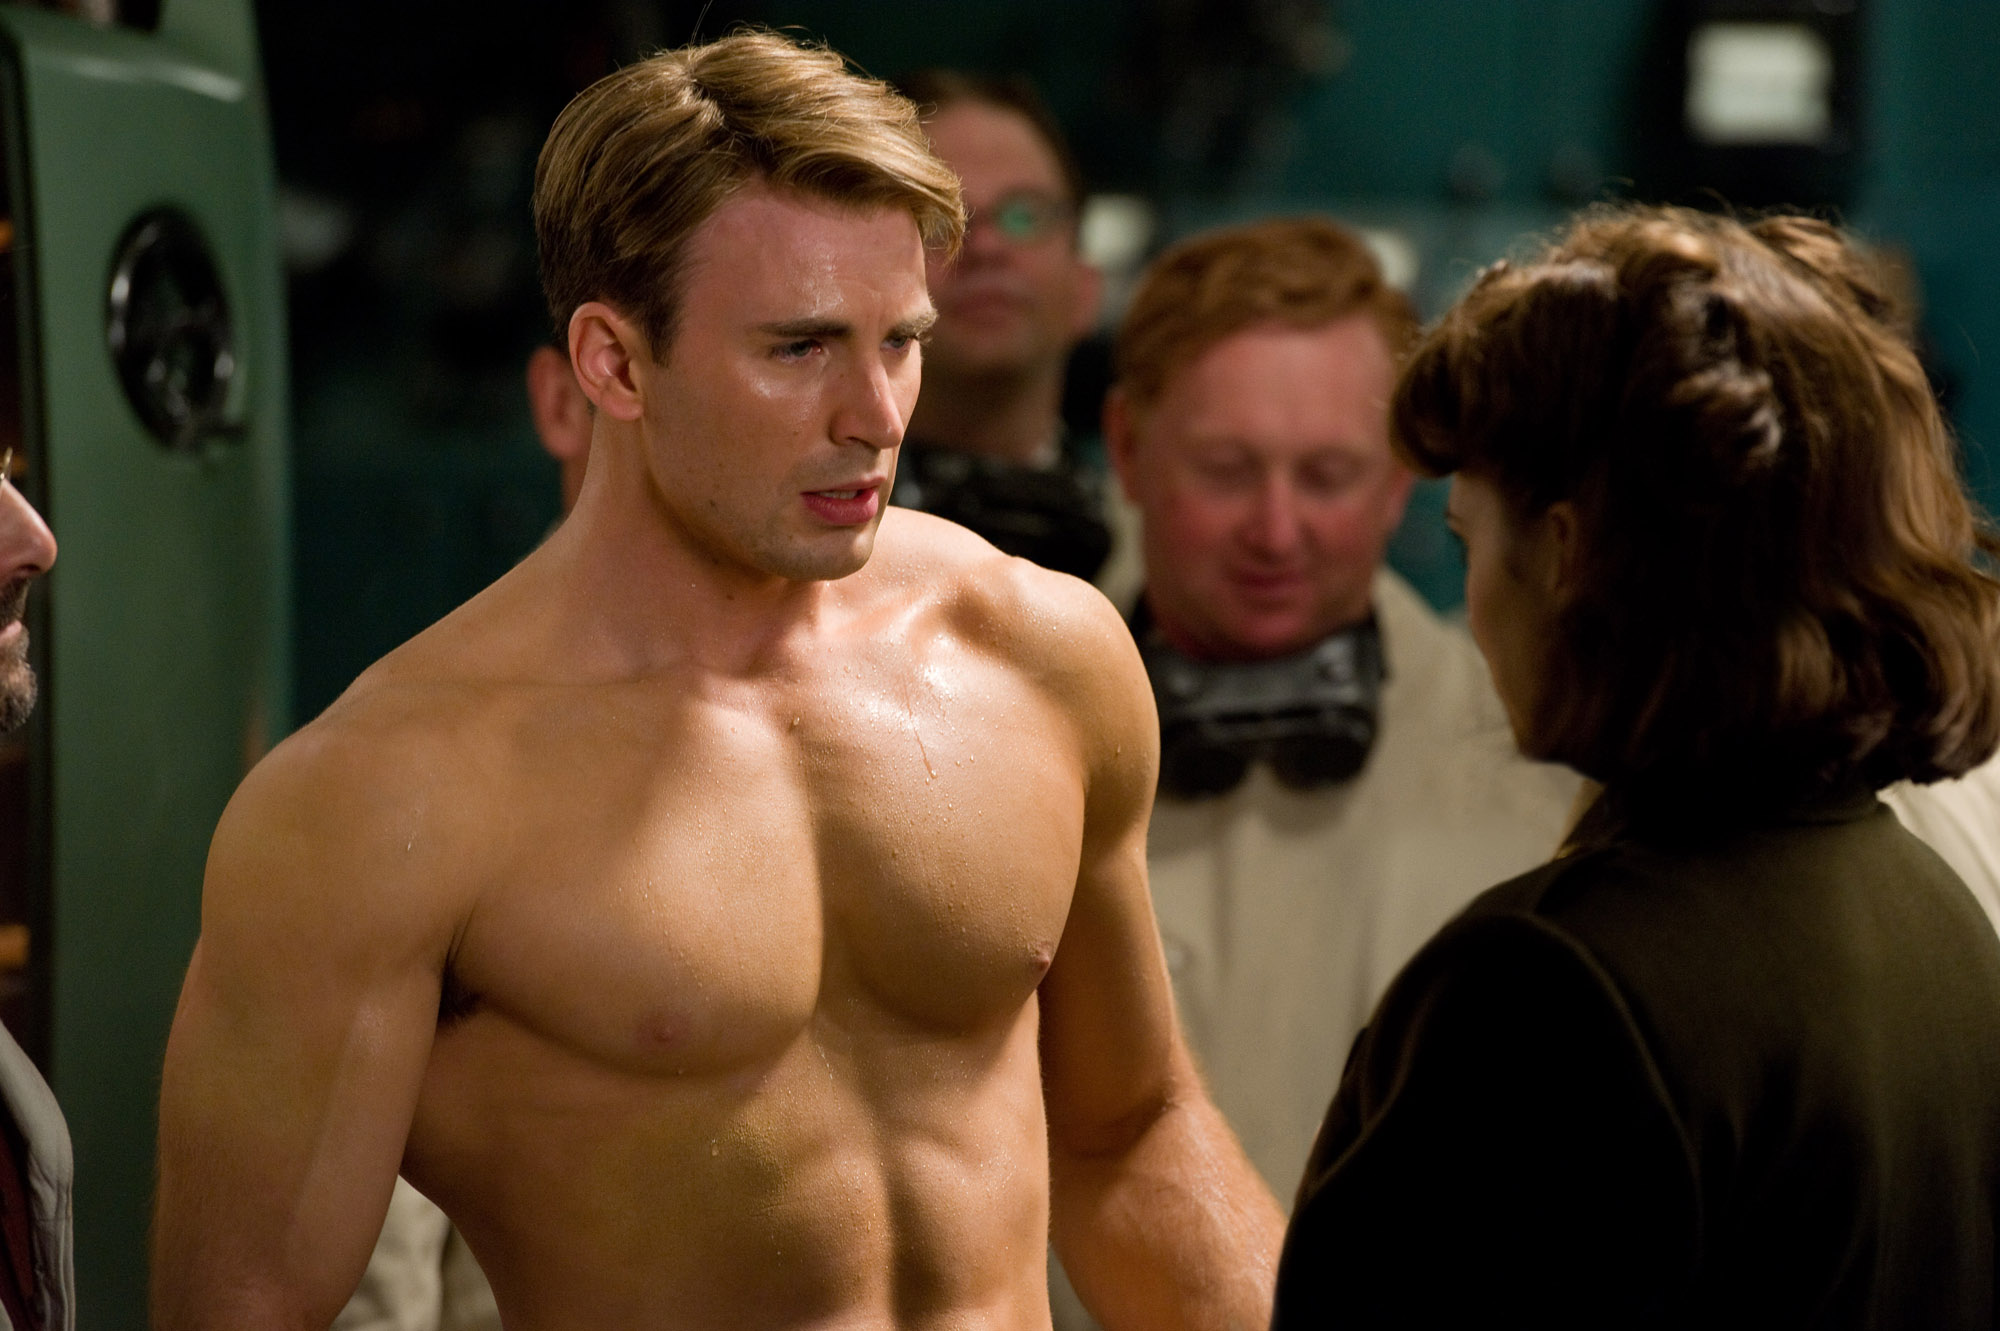 http://collider.com/wp-content/uploads/captain-america-the-first-avenger-movie-image-62.jpg